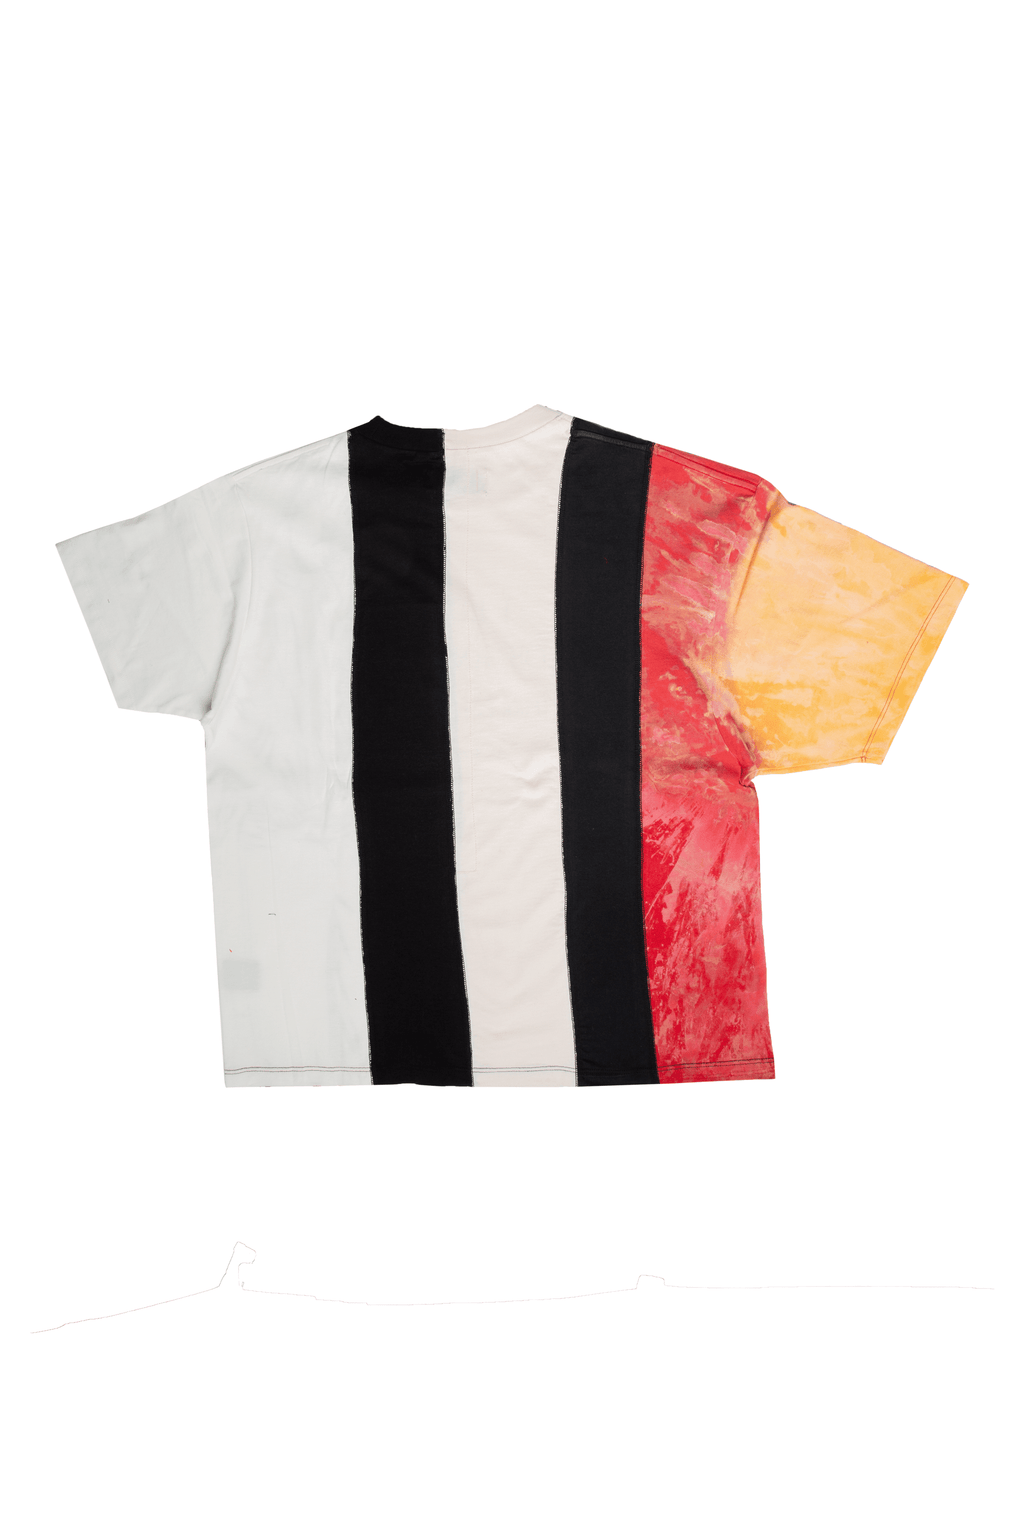 424 - REWORKED T-SHIRT